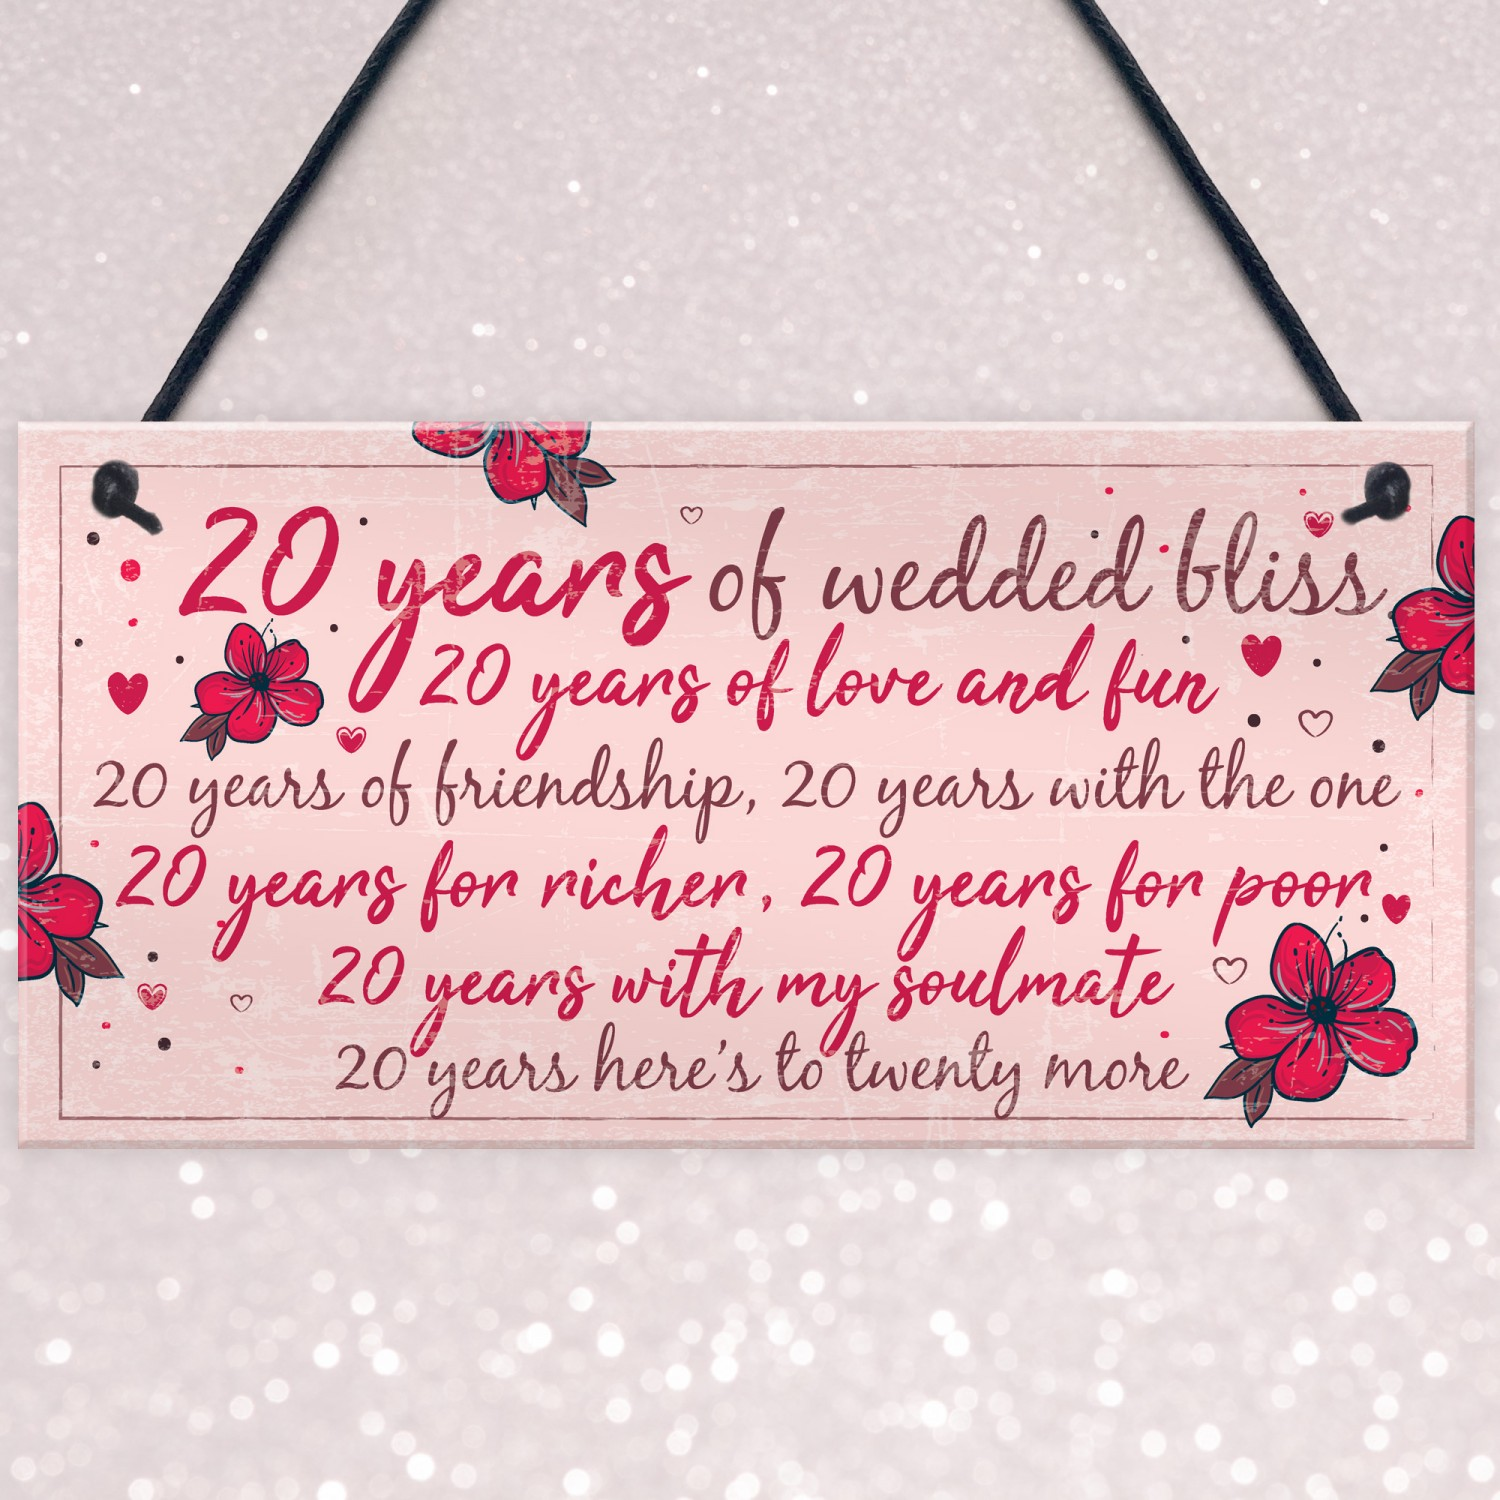 What Is The Gift For 20th Wedding Anniversary: 20th Wedding Anniversary Card Gift For Husband Wife Twenty